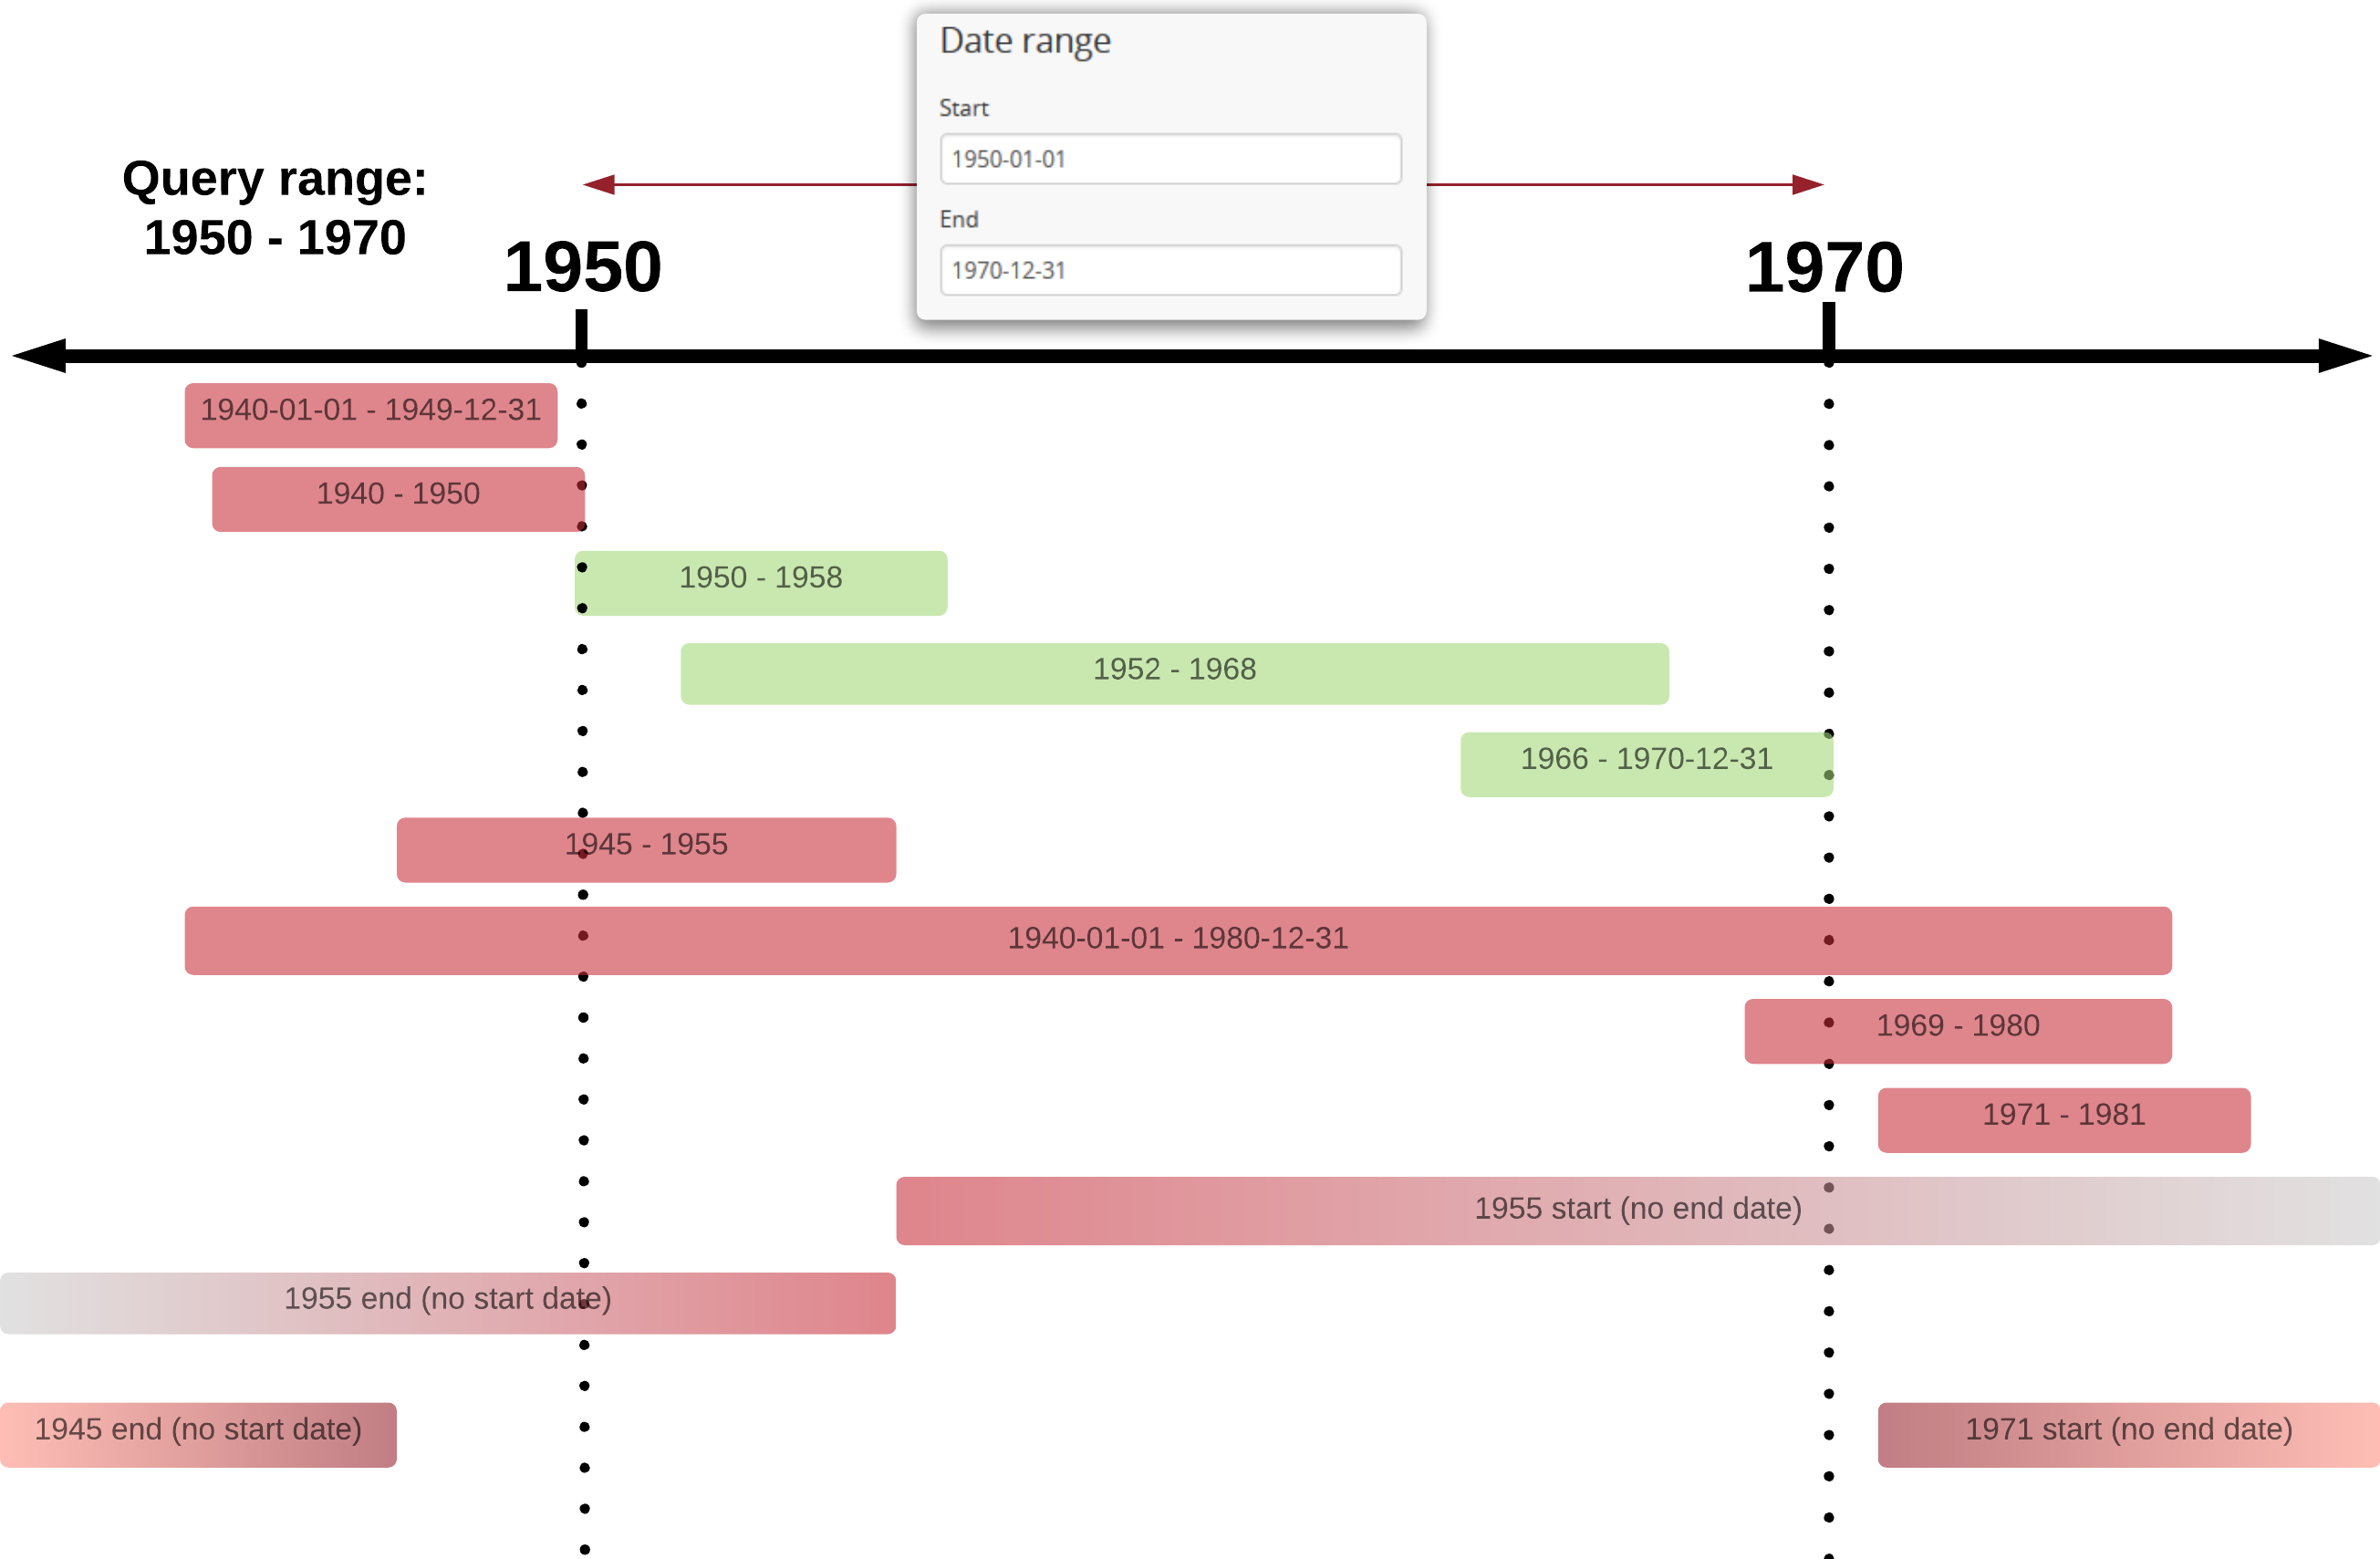 An example of results returned for a 1950-1970 query using the Exact option